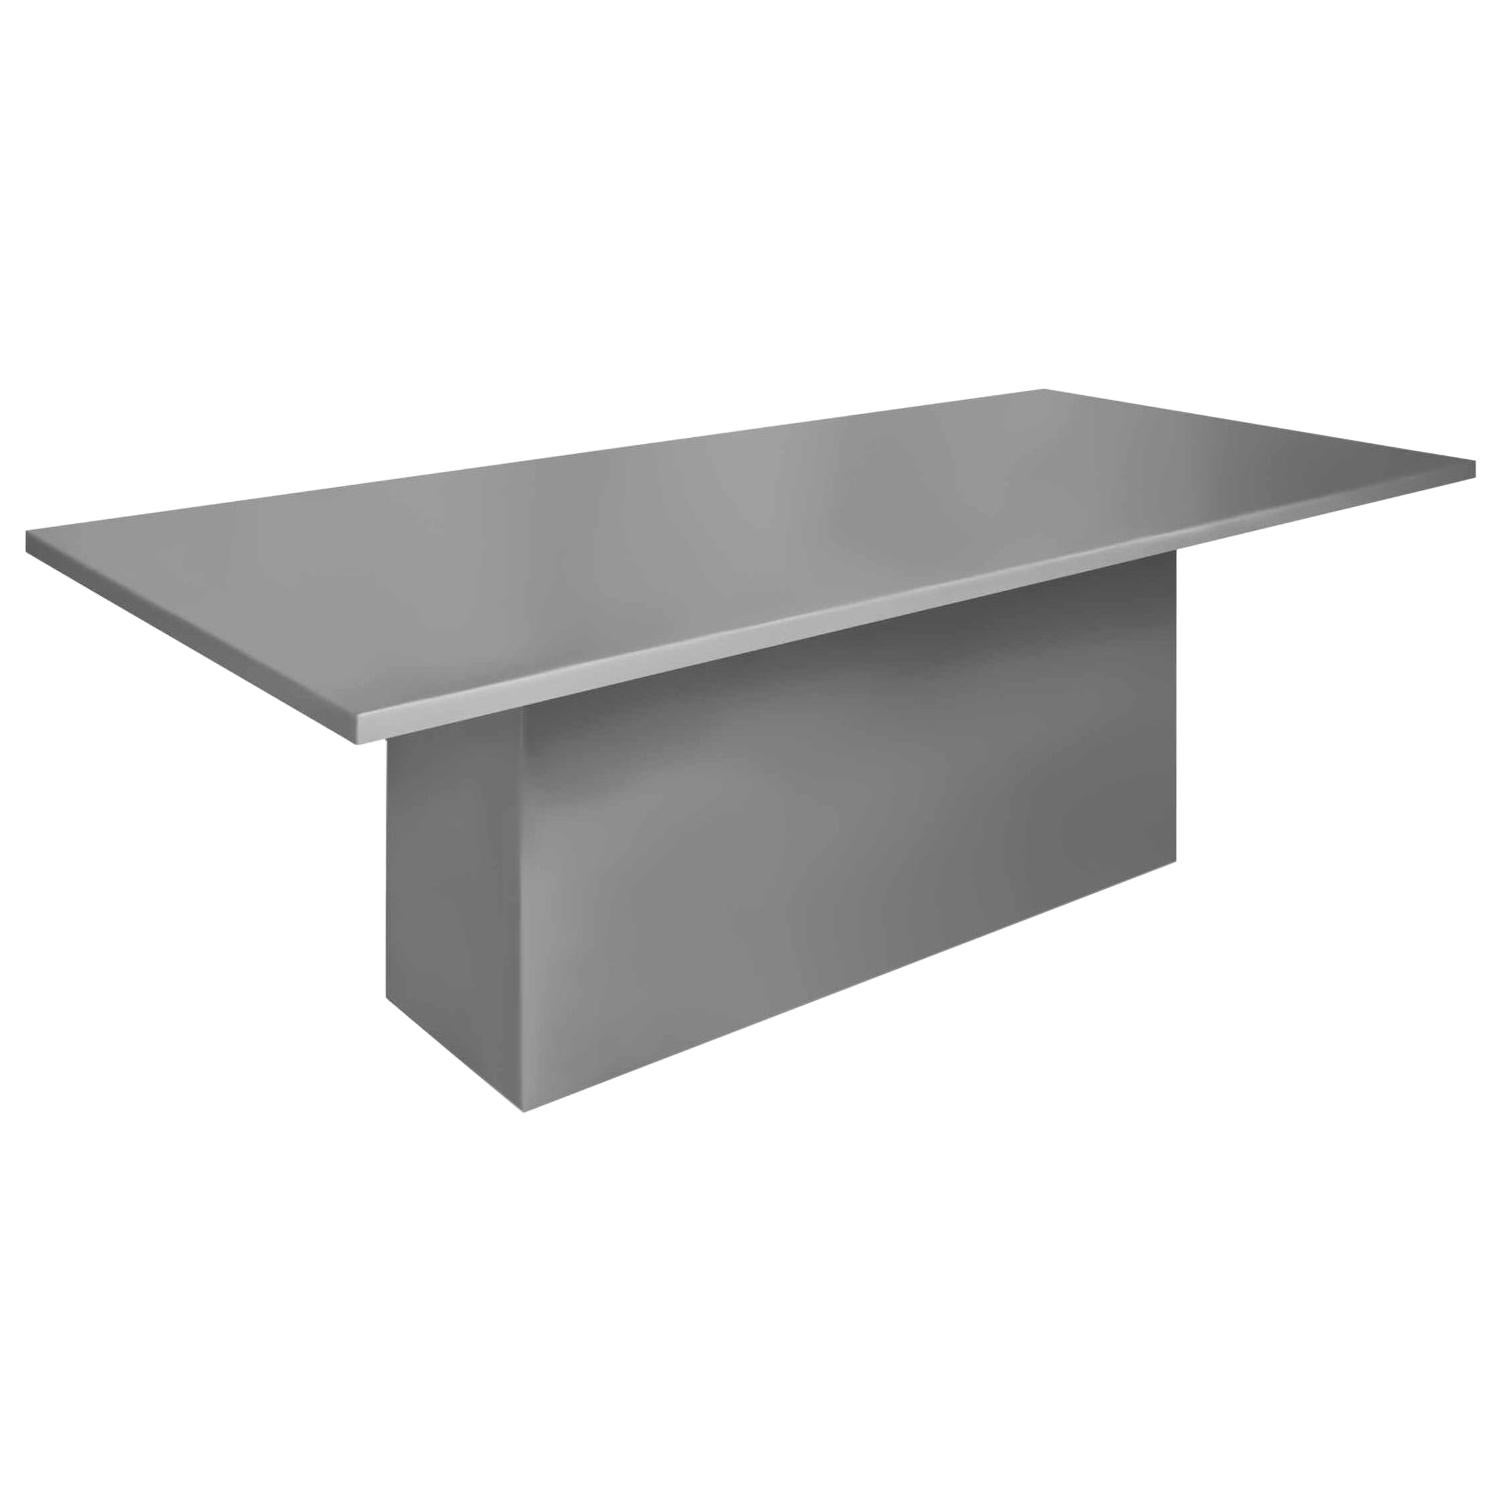 Contemporary Style Dining Table for Outdoor Use, Matte Grey